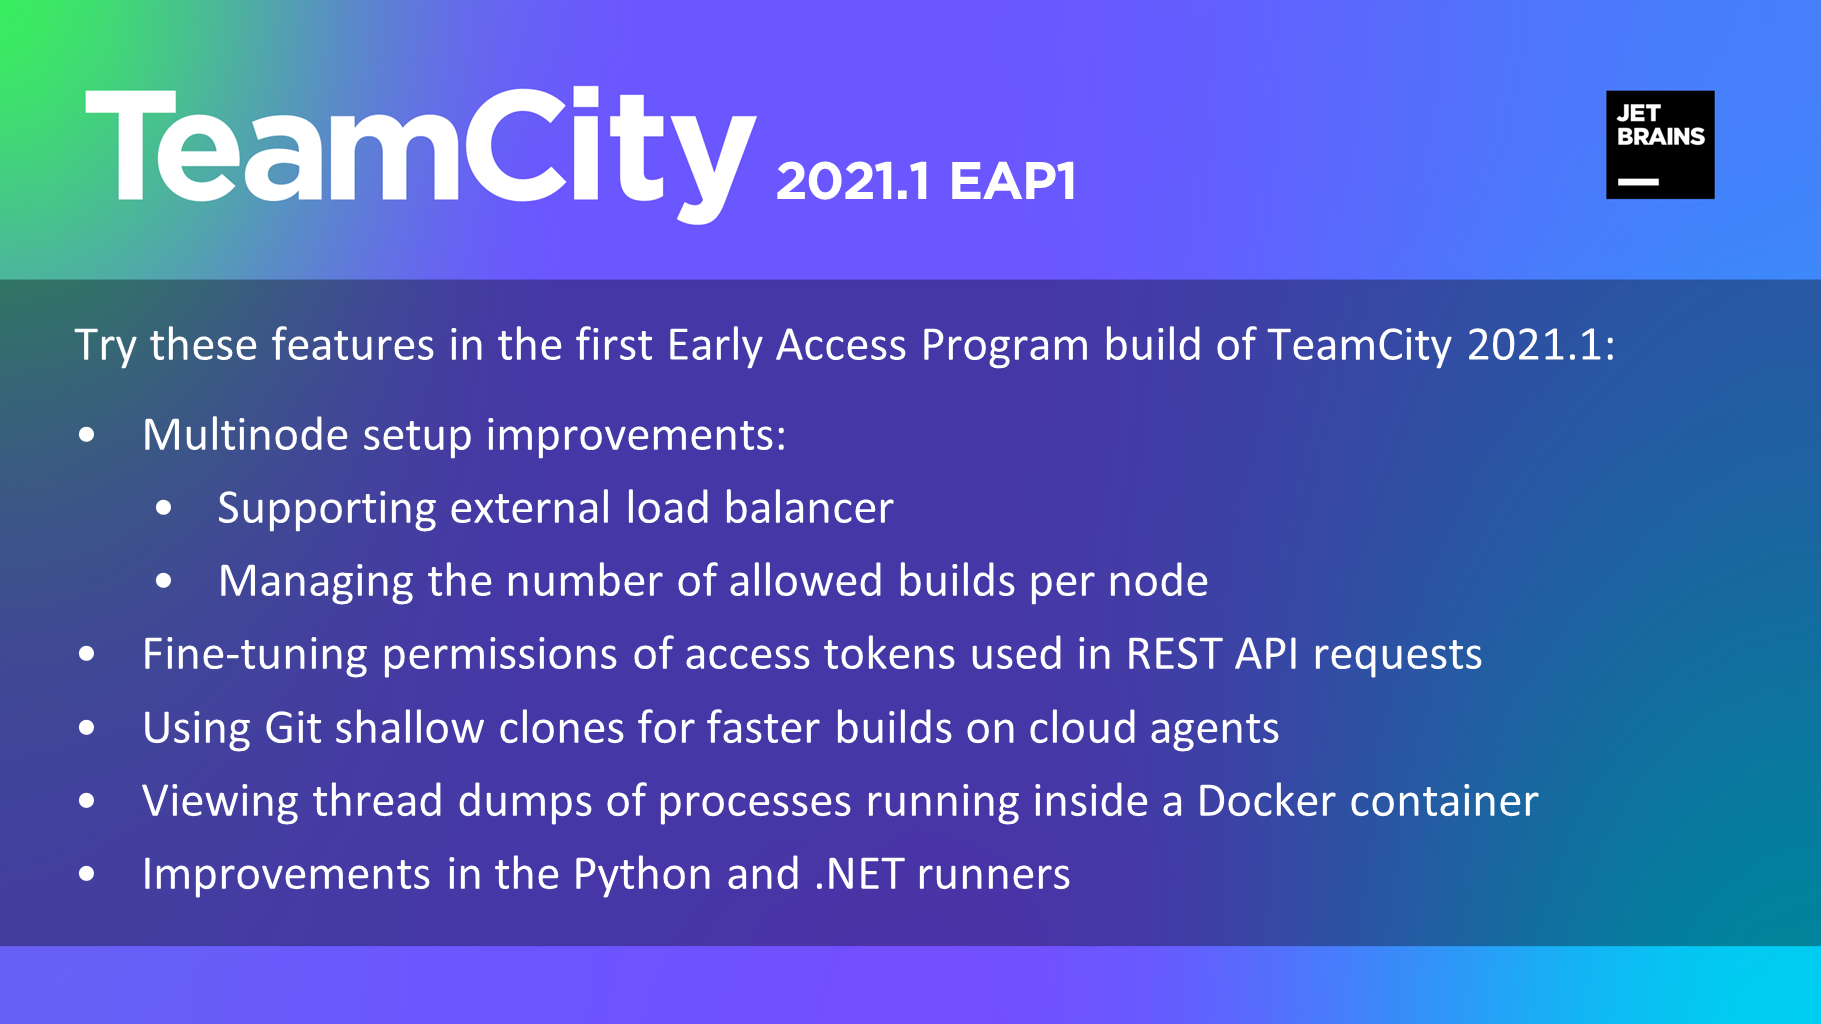 TeamCity 2021.1 EAP is open